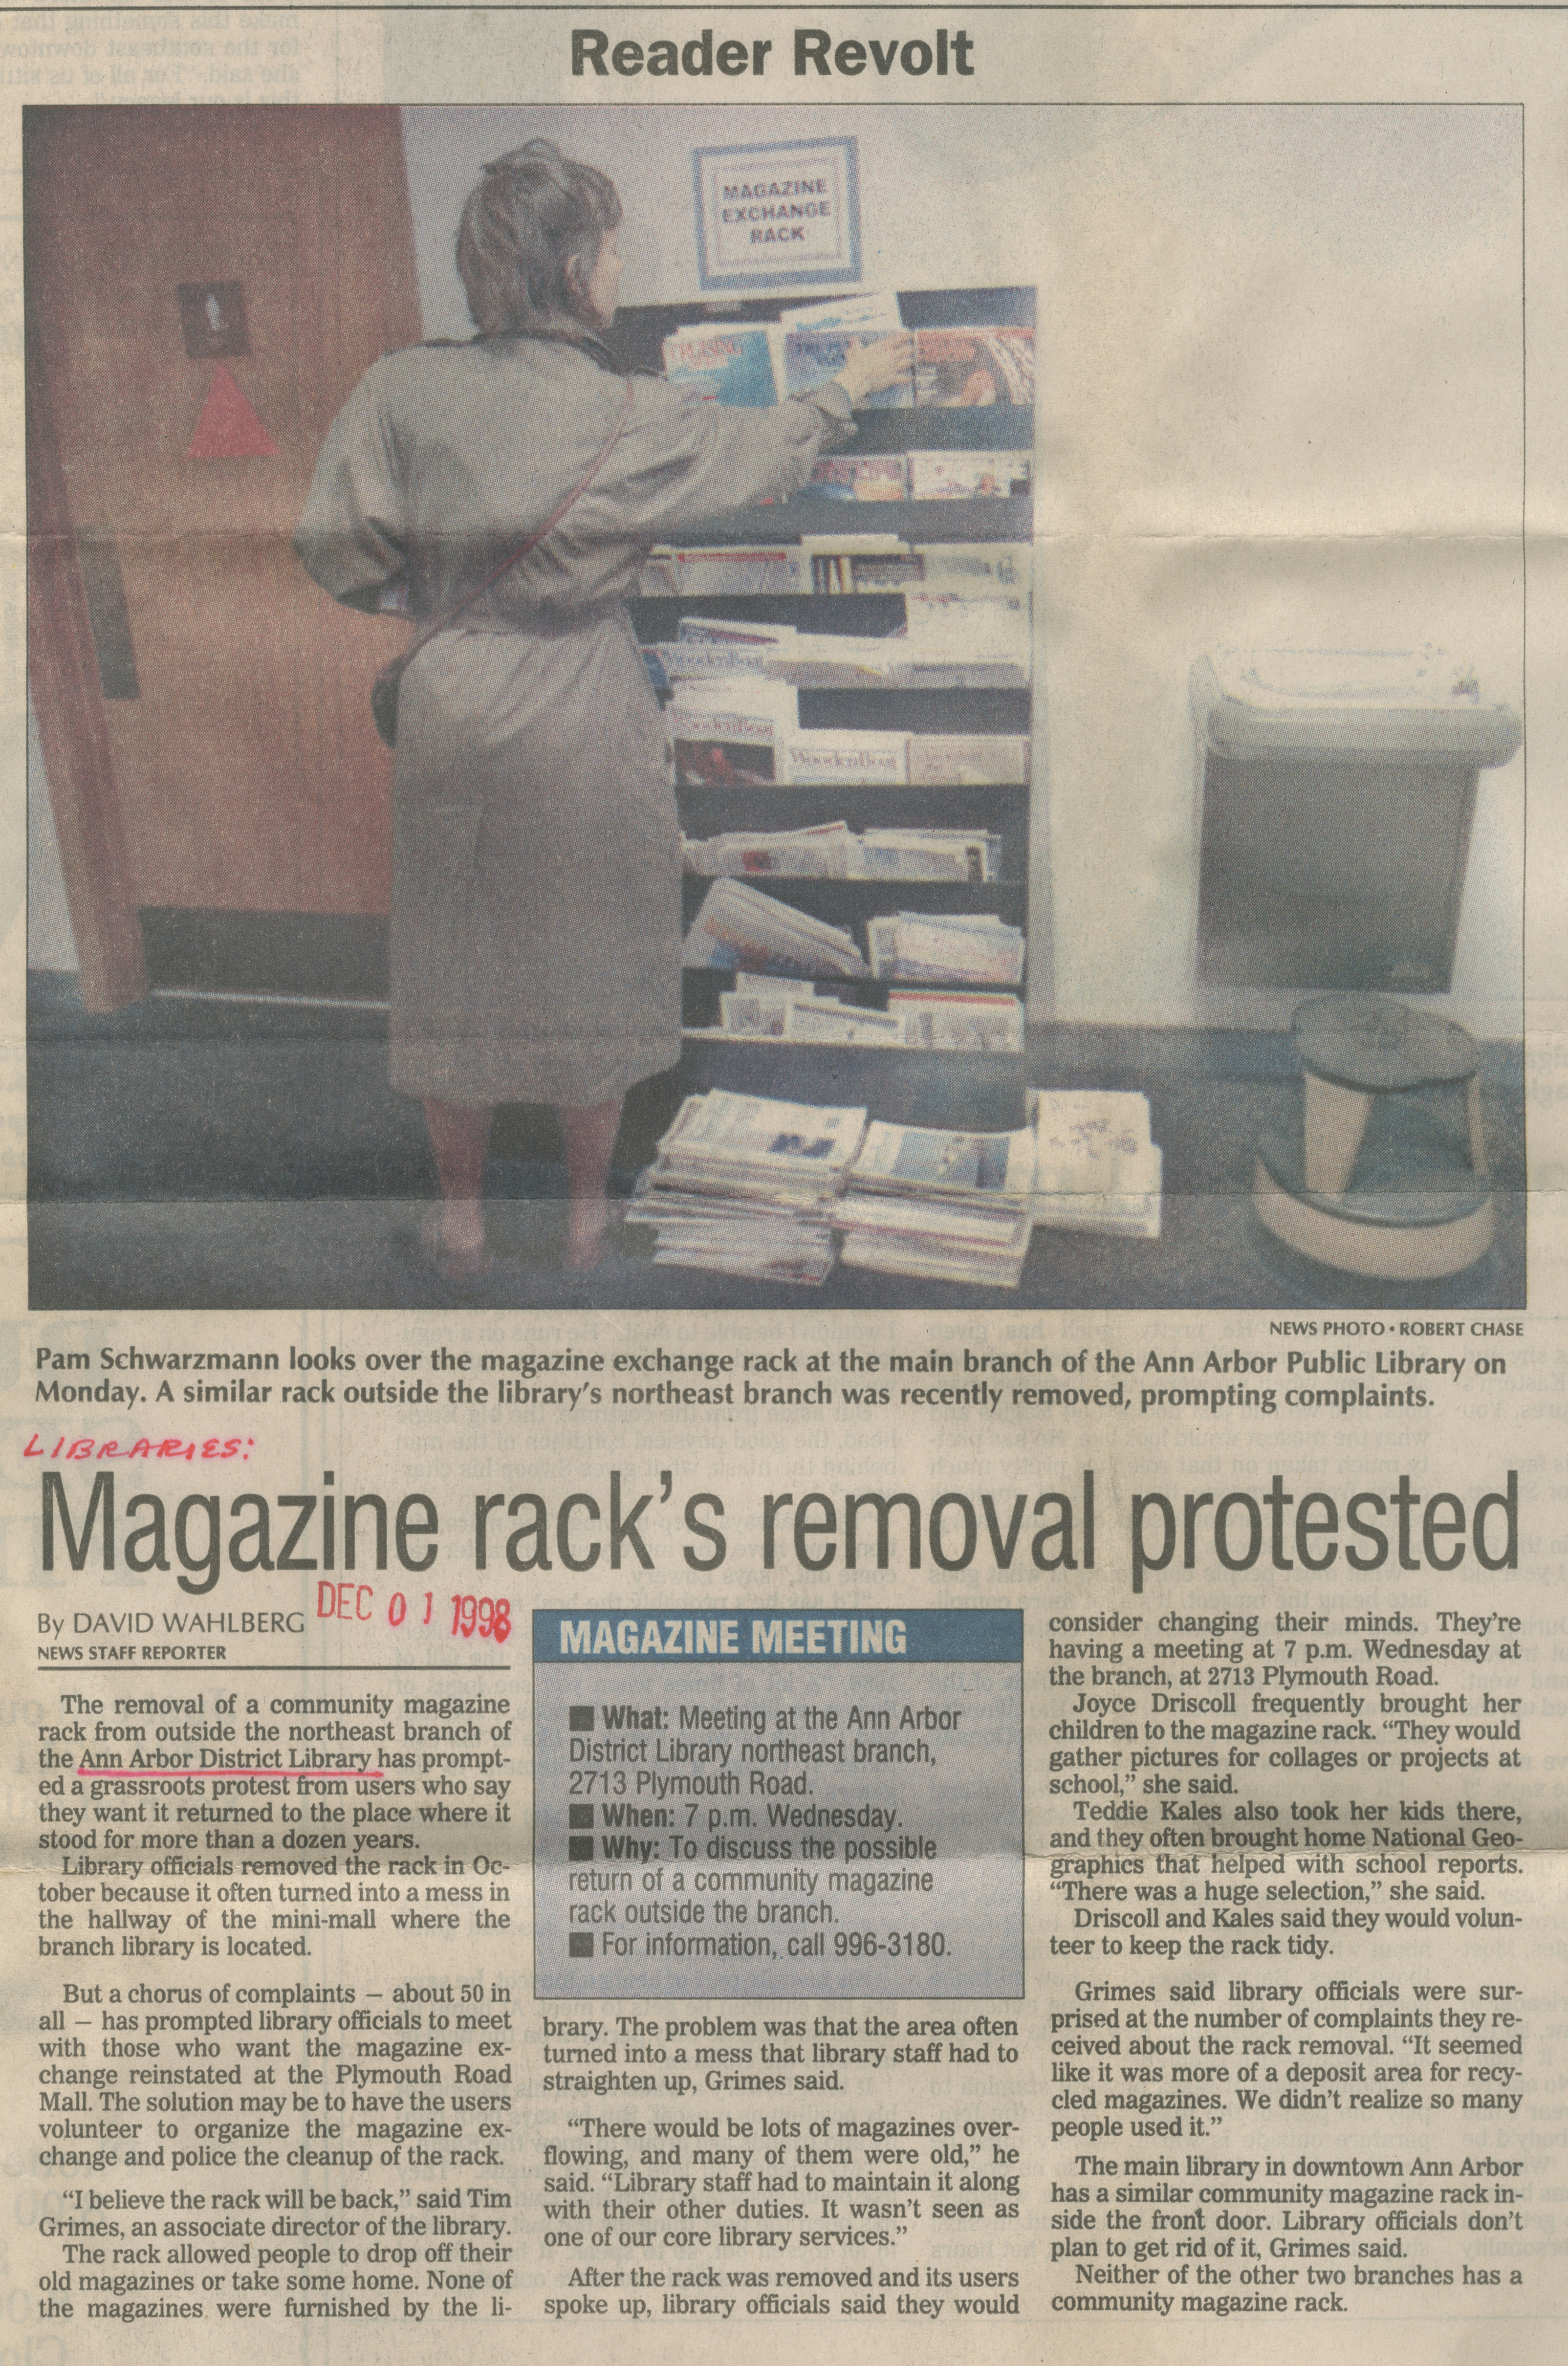 Reader Revolt - Magazine Rack's Removal Protested image